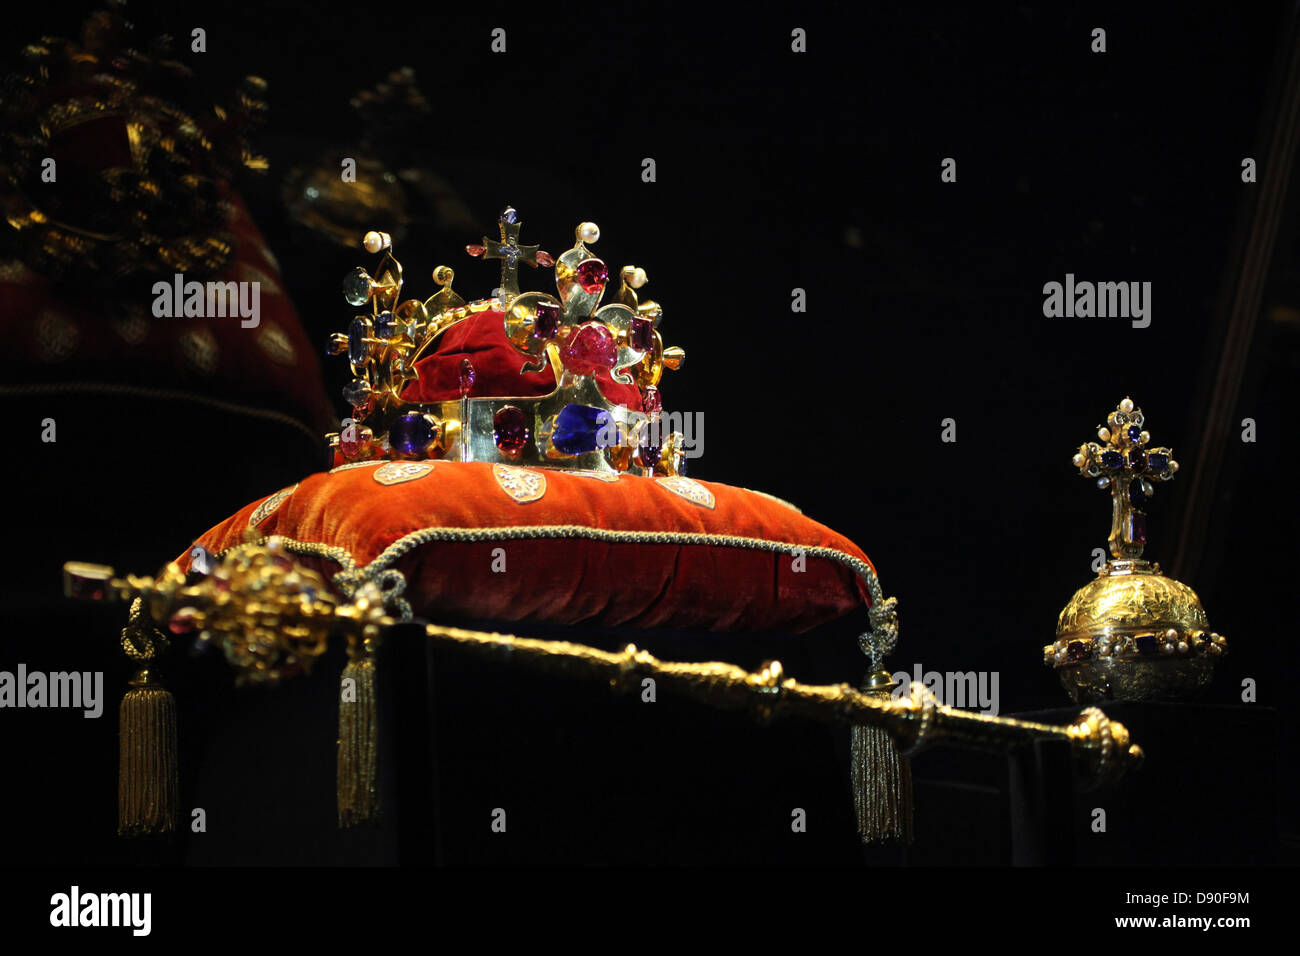 The Crown of Saint Wenceslas and the Royal Apple and Sceptre displayed at the exhibition of the Czech Crown Jewels. Stock Photo